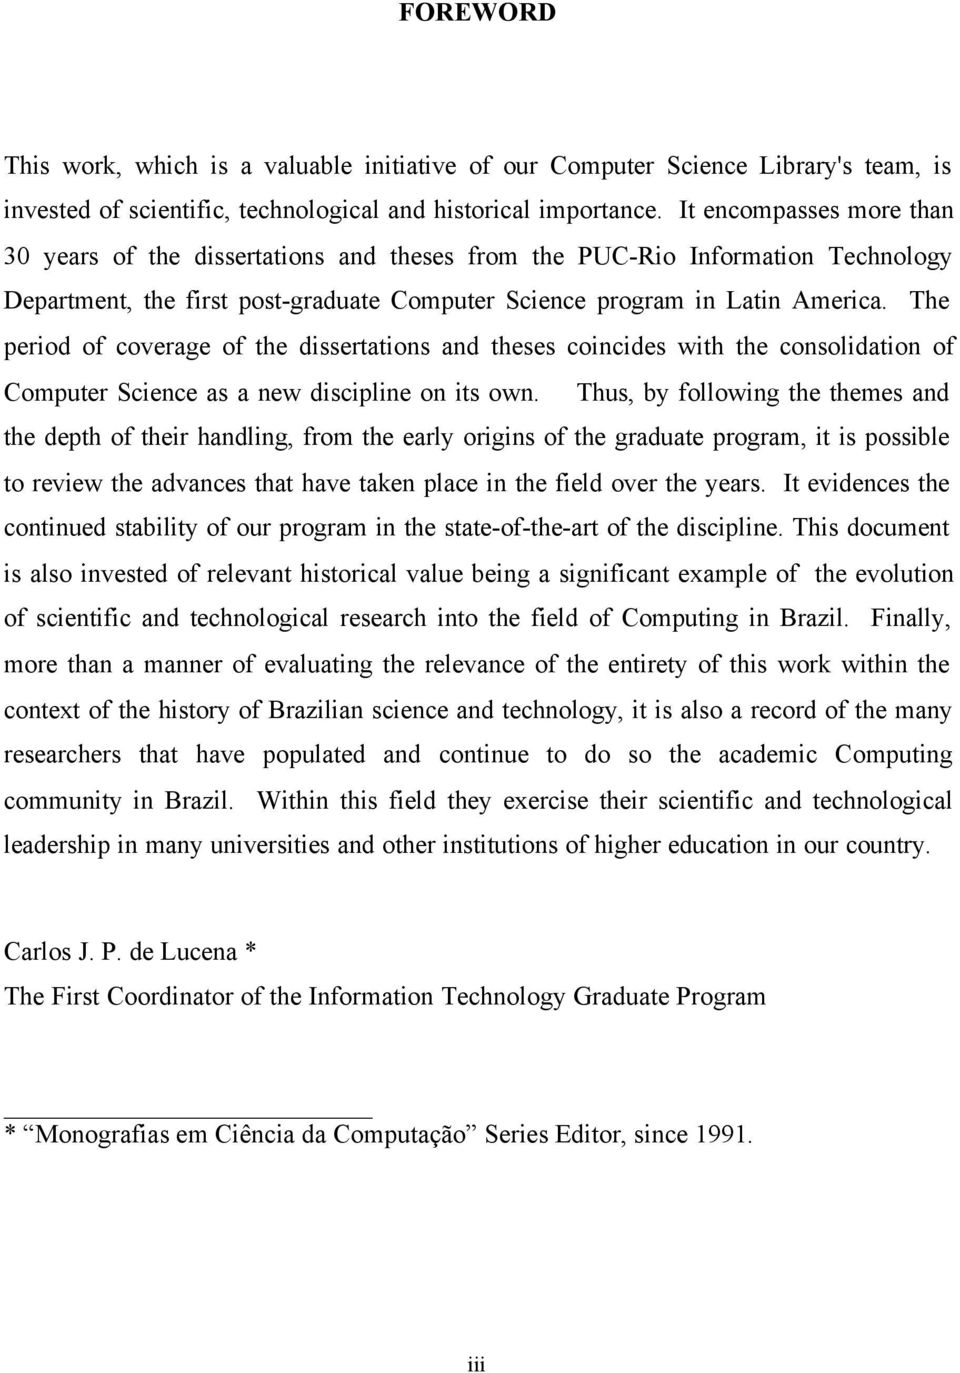 The period of coverage of the dissertations and theses coincides with the consolidation of Computer Science as a new discipline on its own.